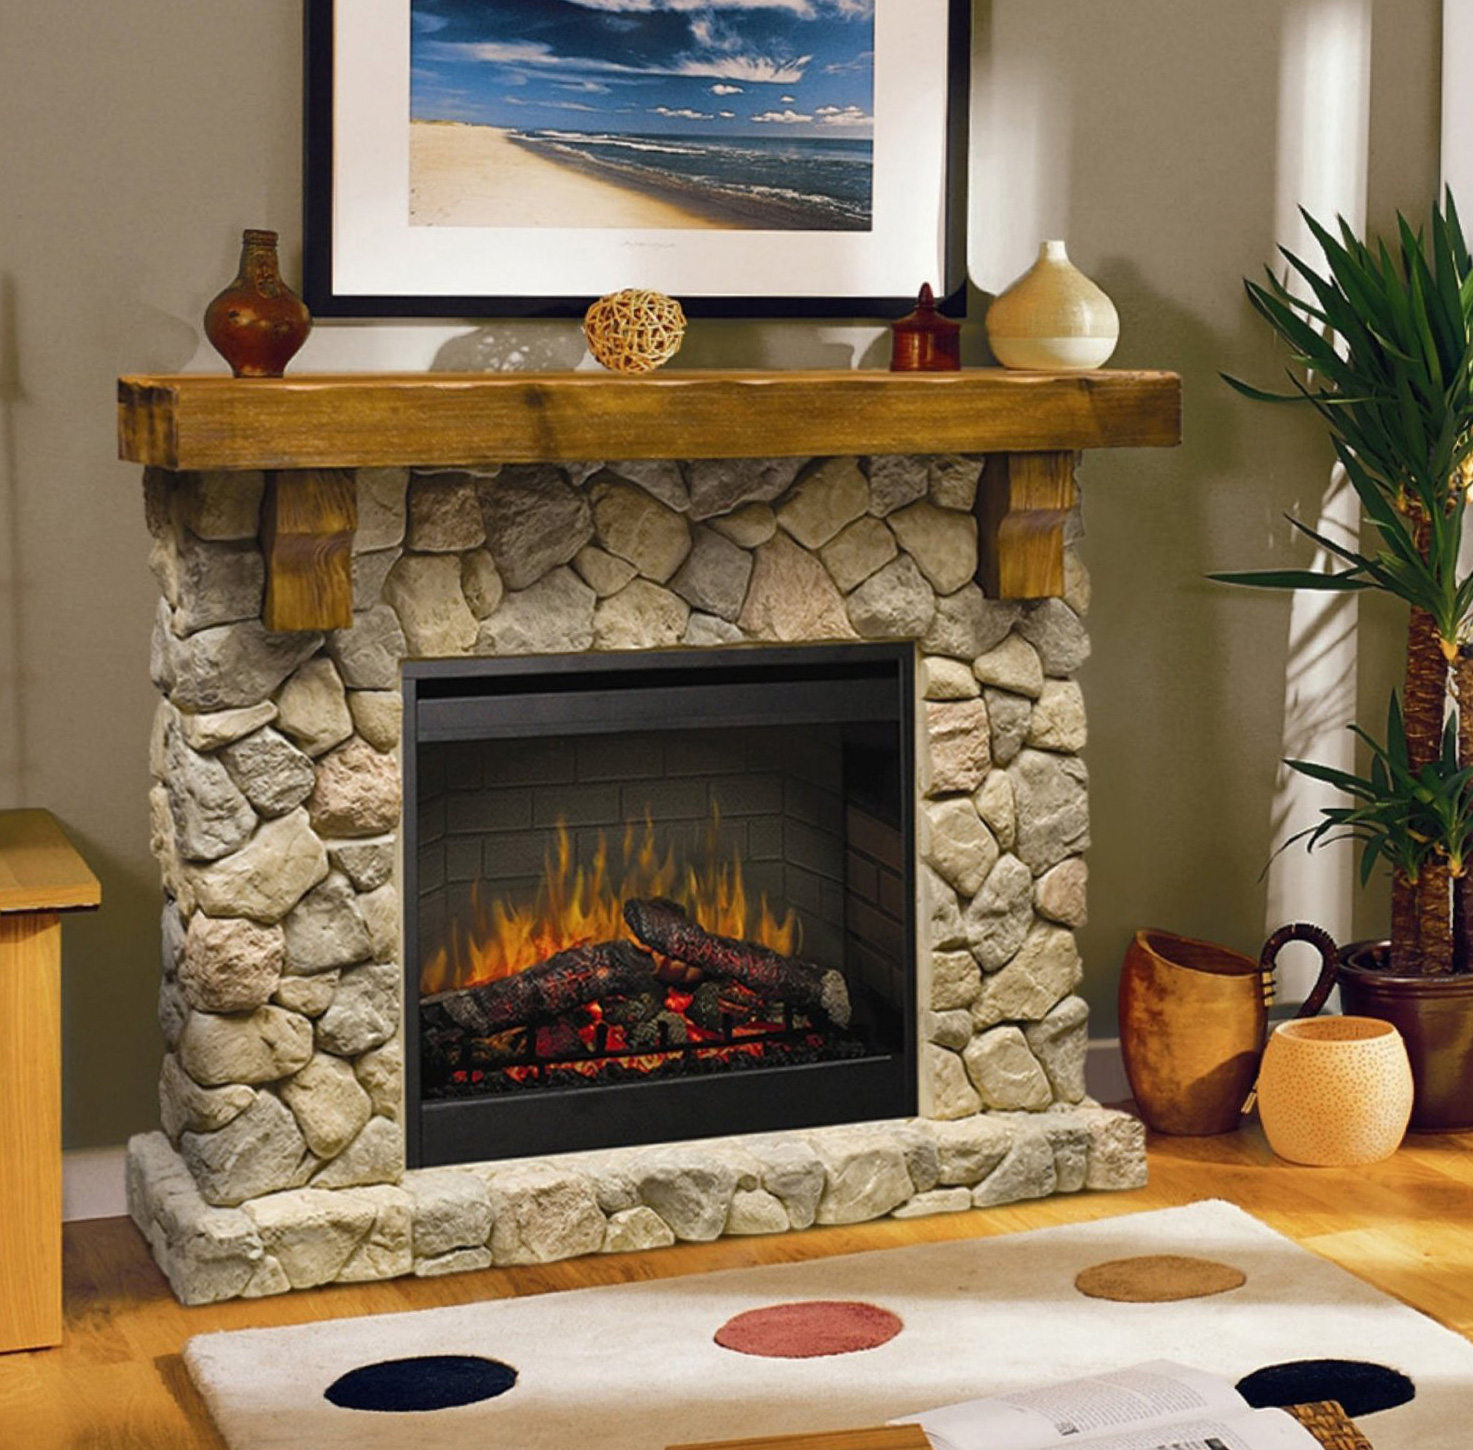 inspiring ideas marvelous fireplace ideas with tv backyard